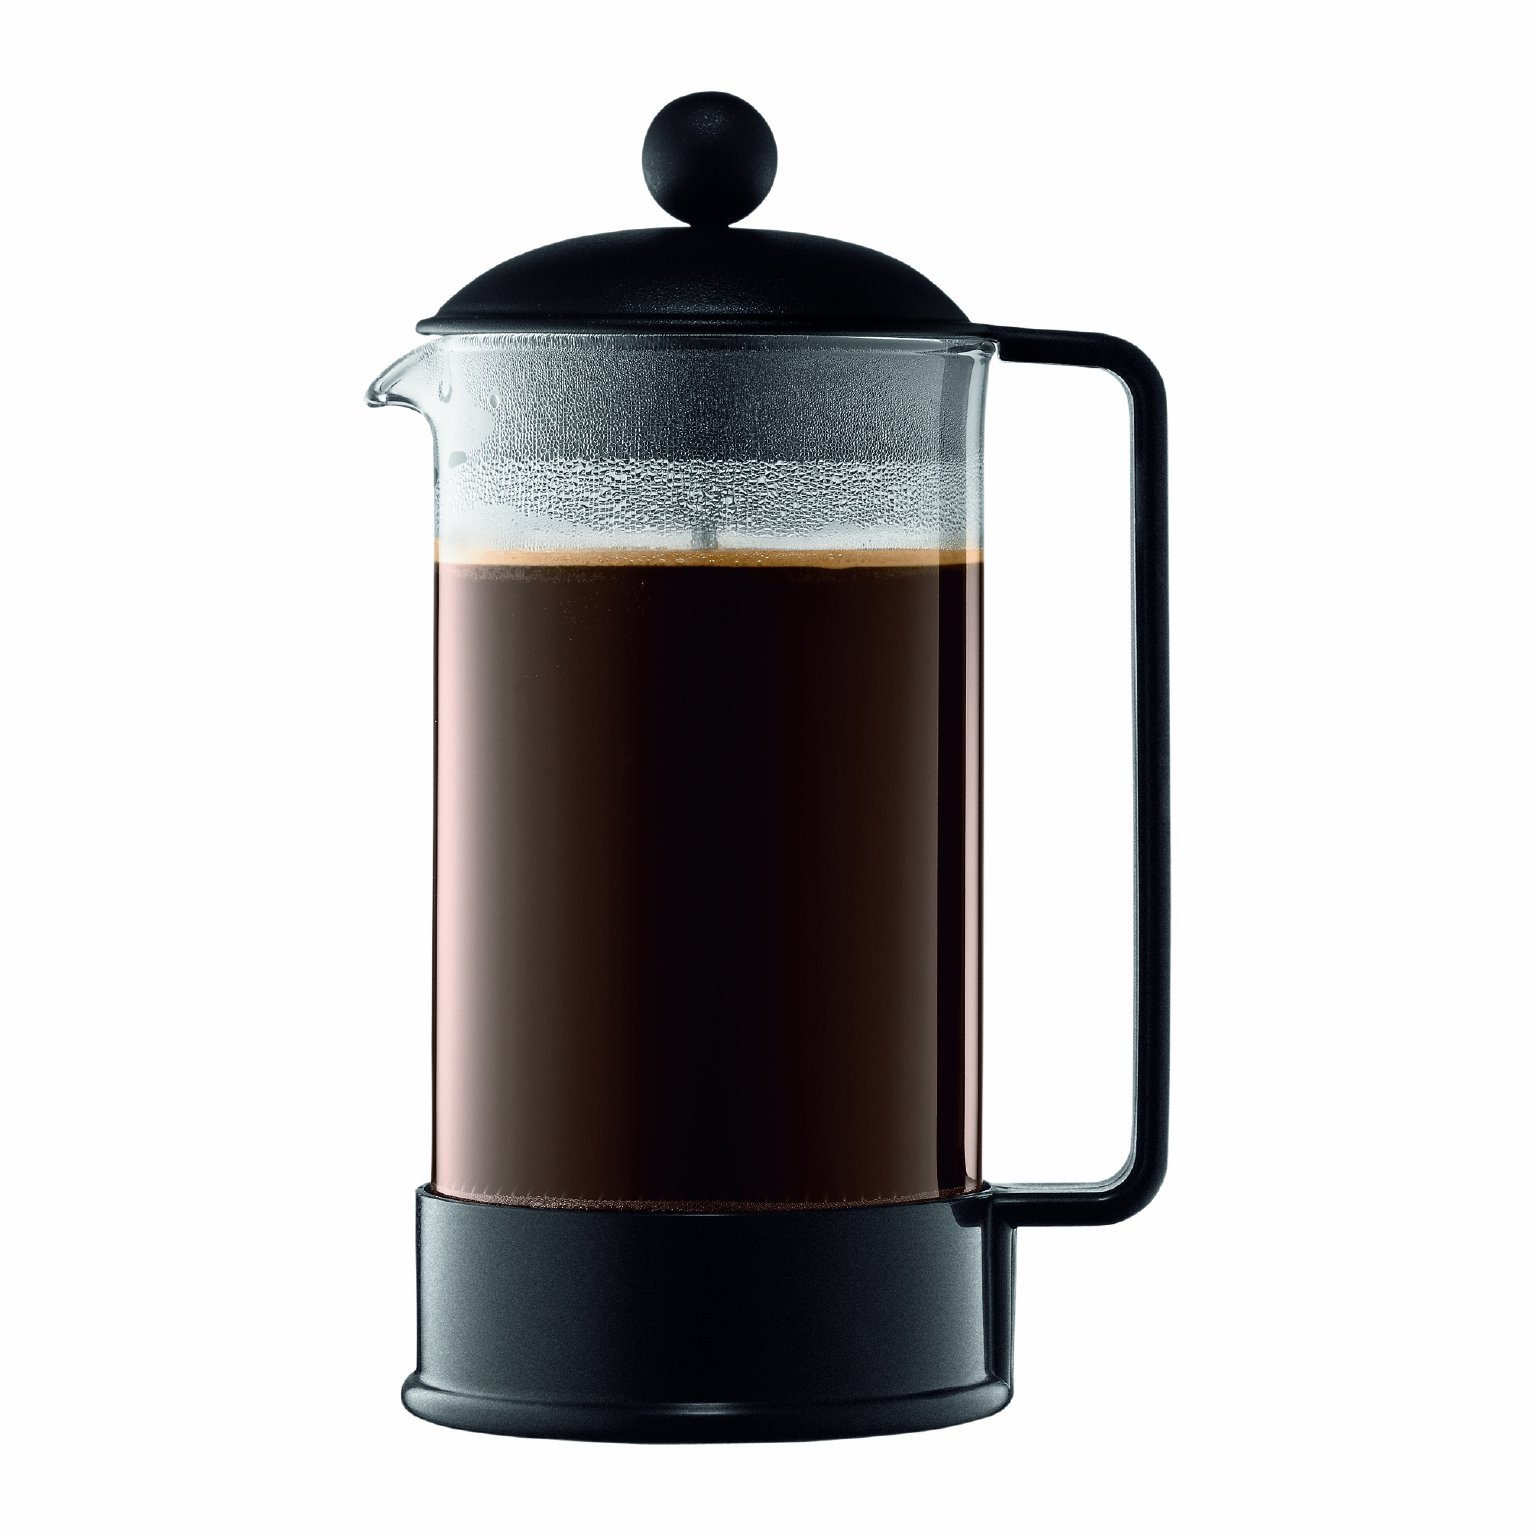 Bodum Brazil 8-Cup French Press Coffee Maker, 34-Ounce, Black by Bodum